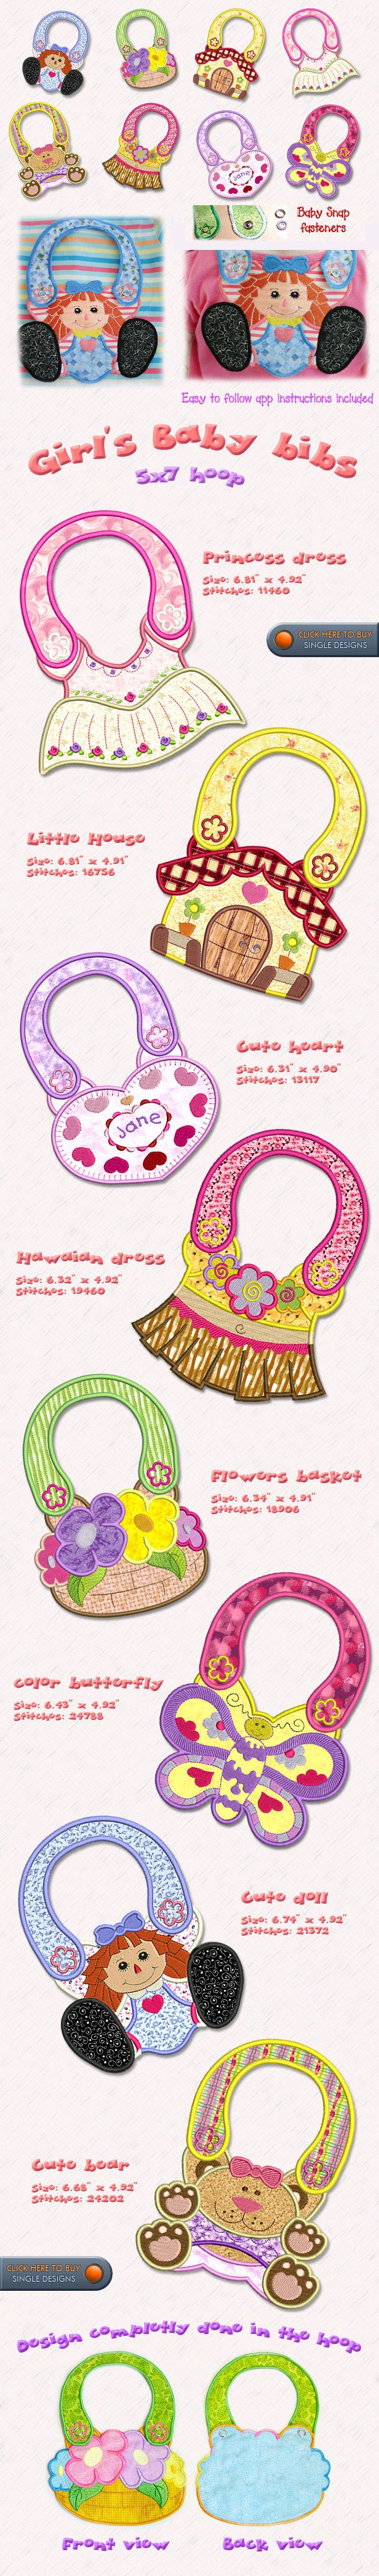 BOYS Embroidery Designs Free Embroidery Design Patterns Applique